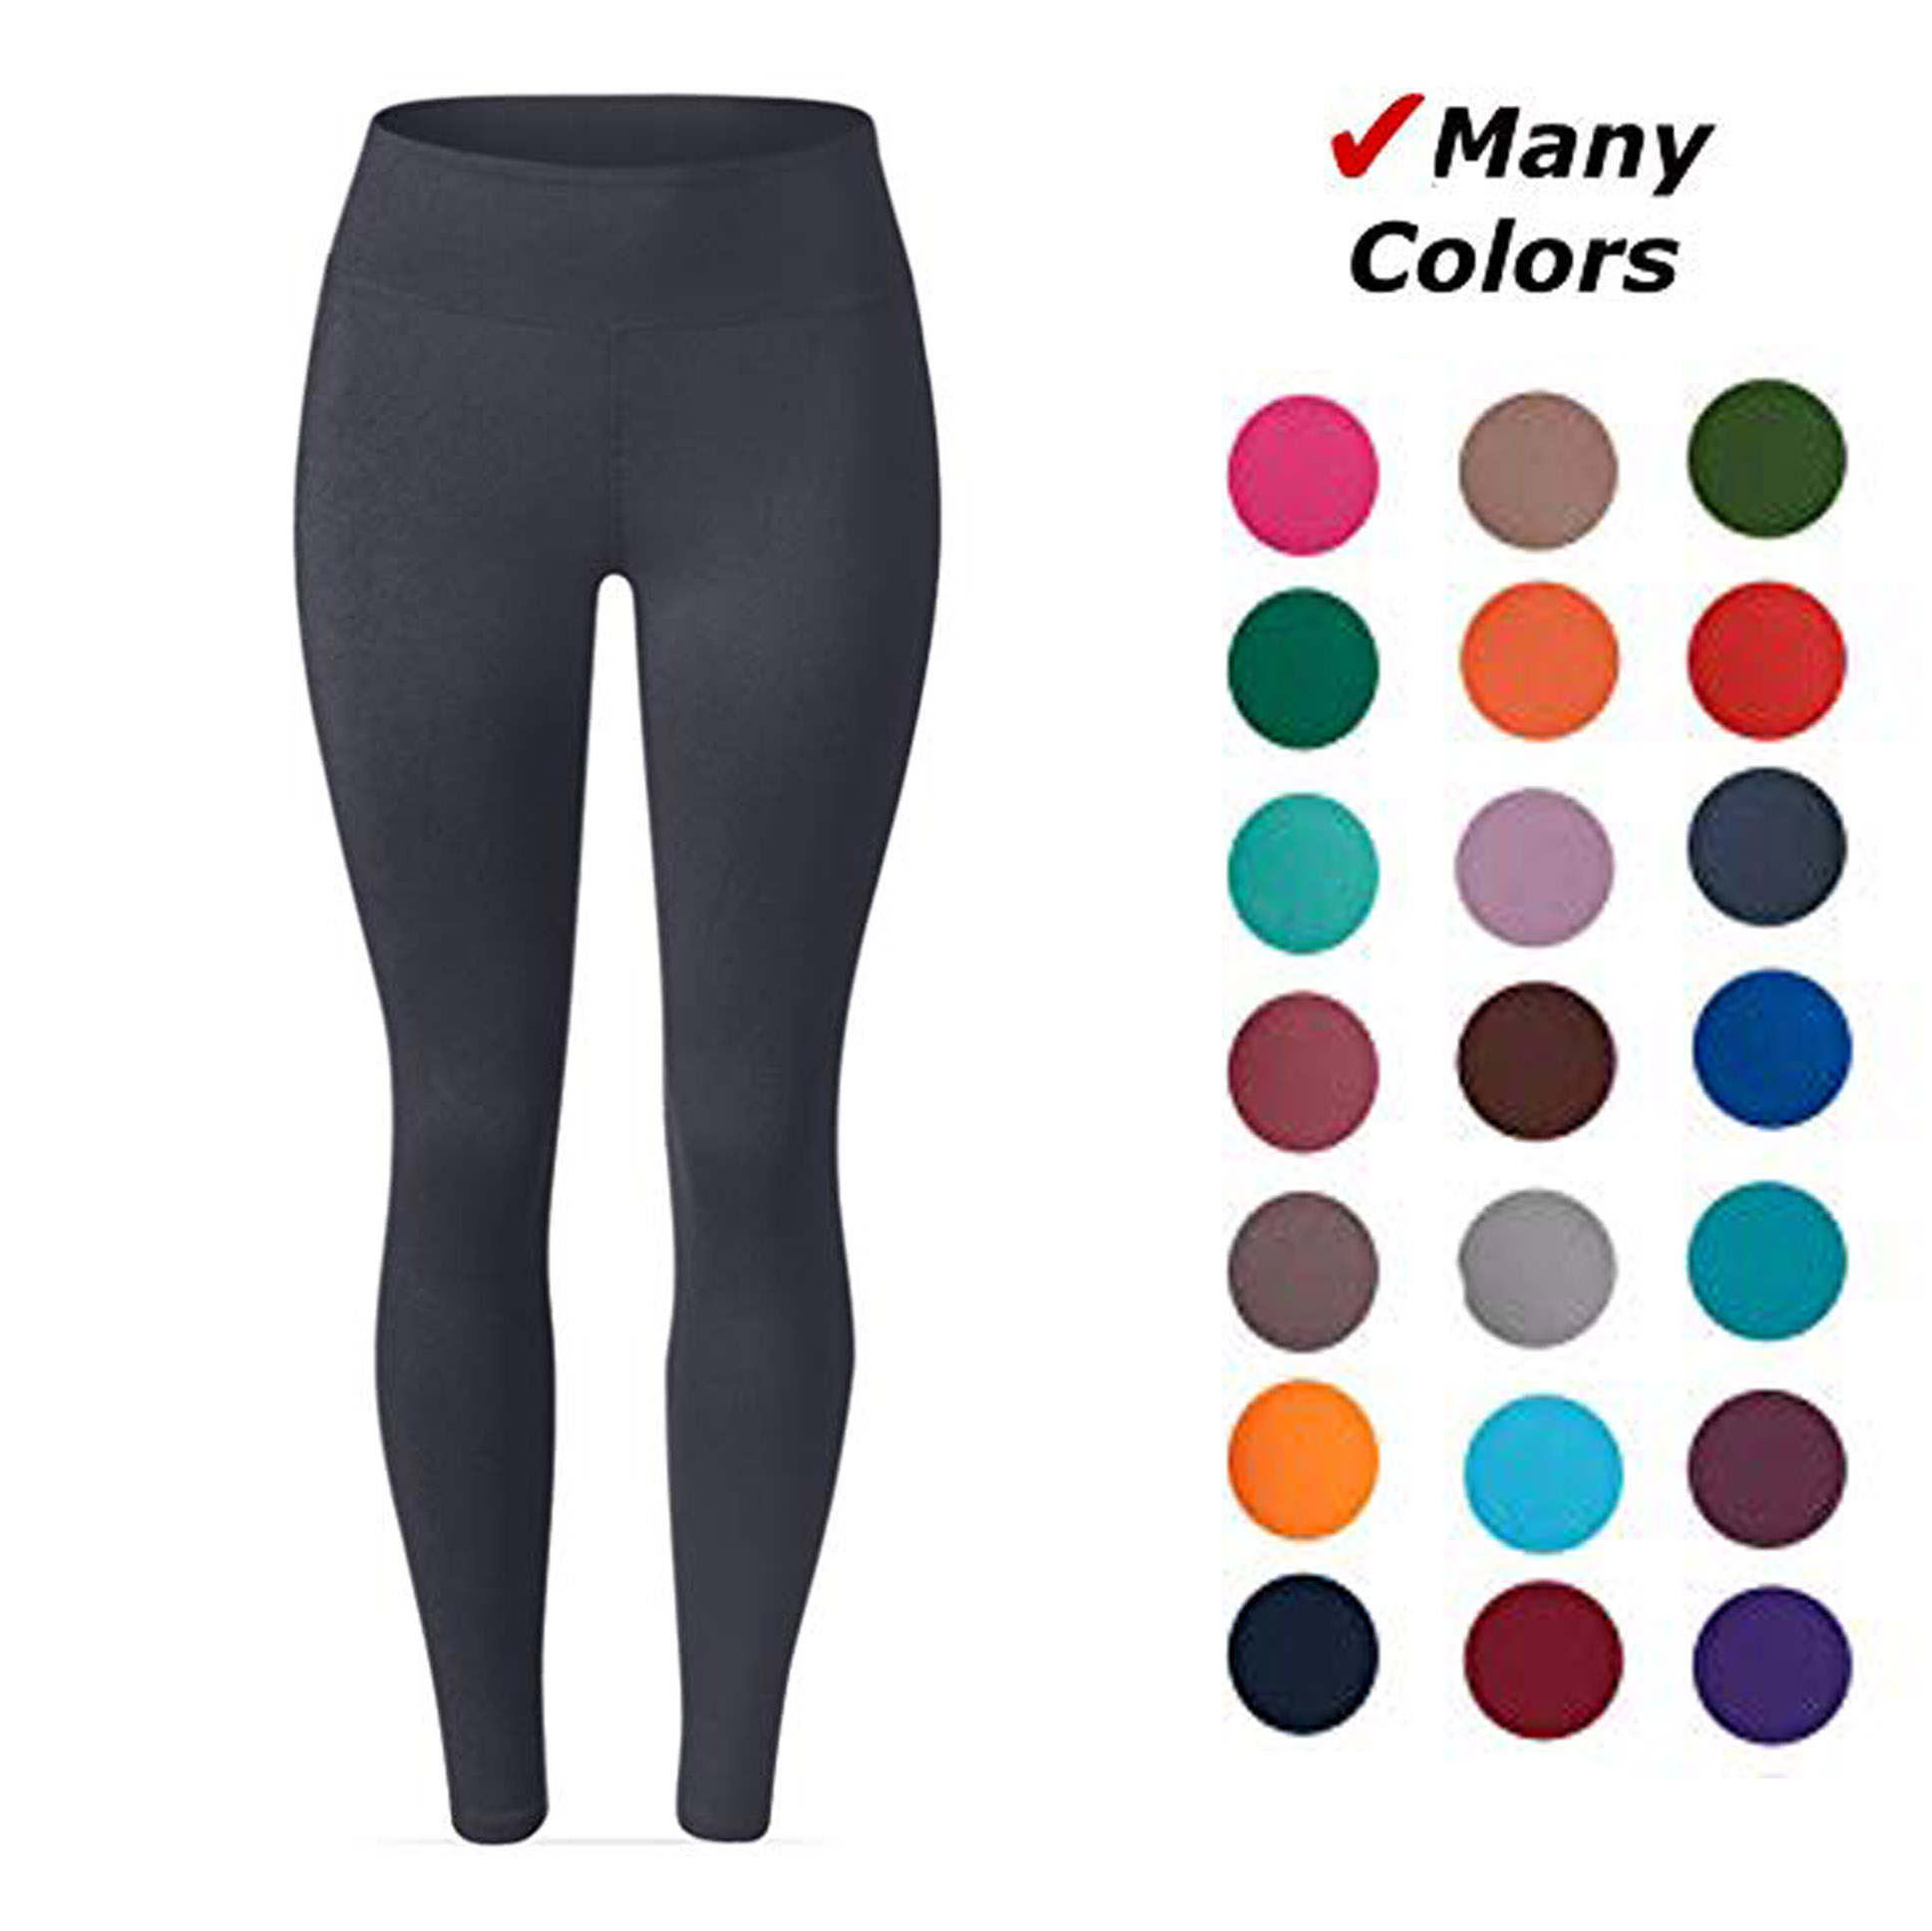 New Spring Solid Leggings Full length for Women High Stretched Female Legging Pants Girl Clothing Leggins Plus Size